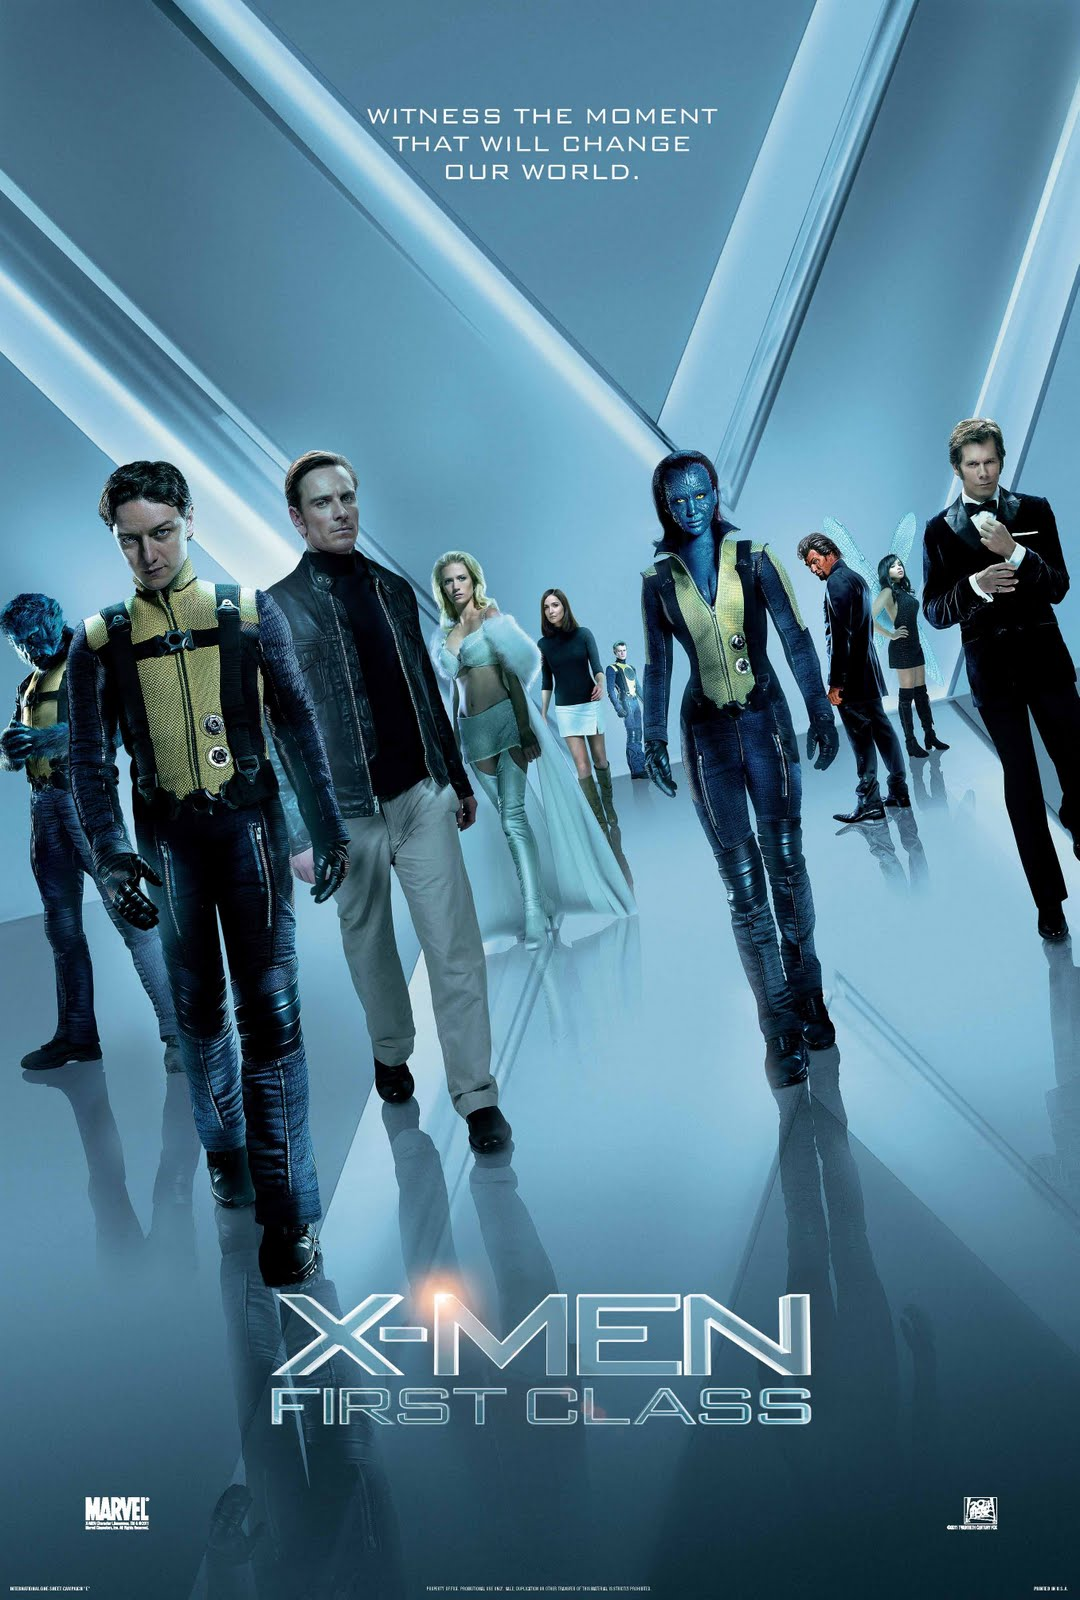 Notes On A Film: X-Men: First Class